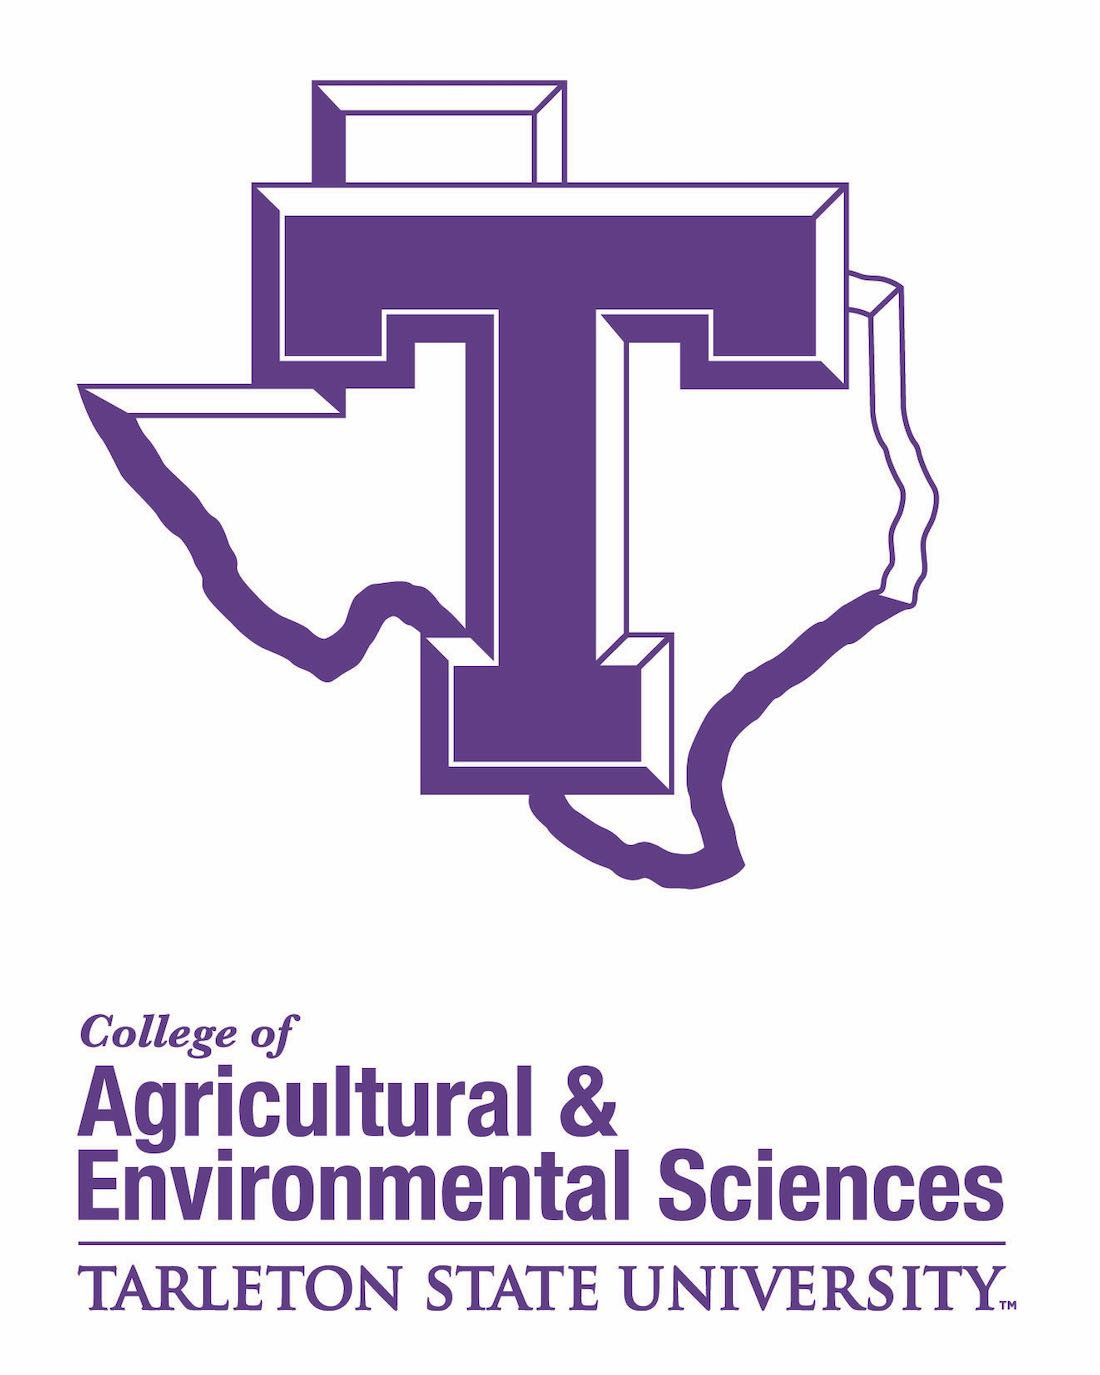 Tarleton State University- College of Agricultural & Environmental Sciences